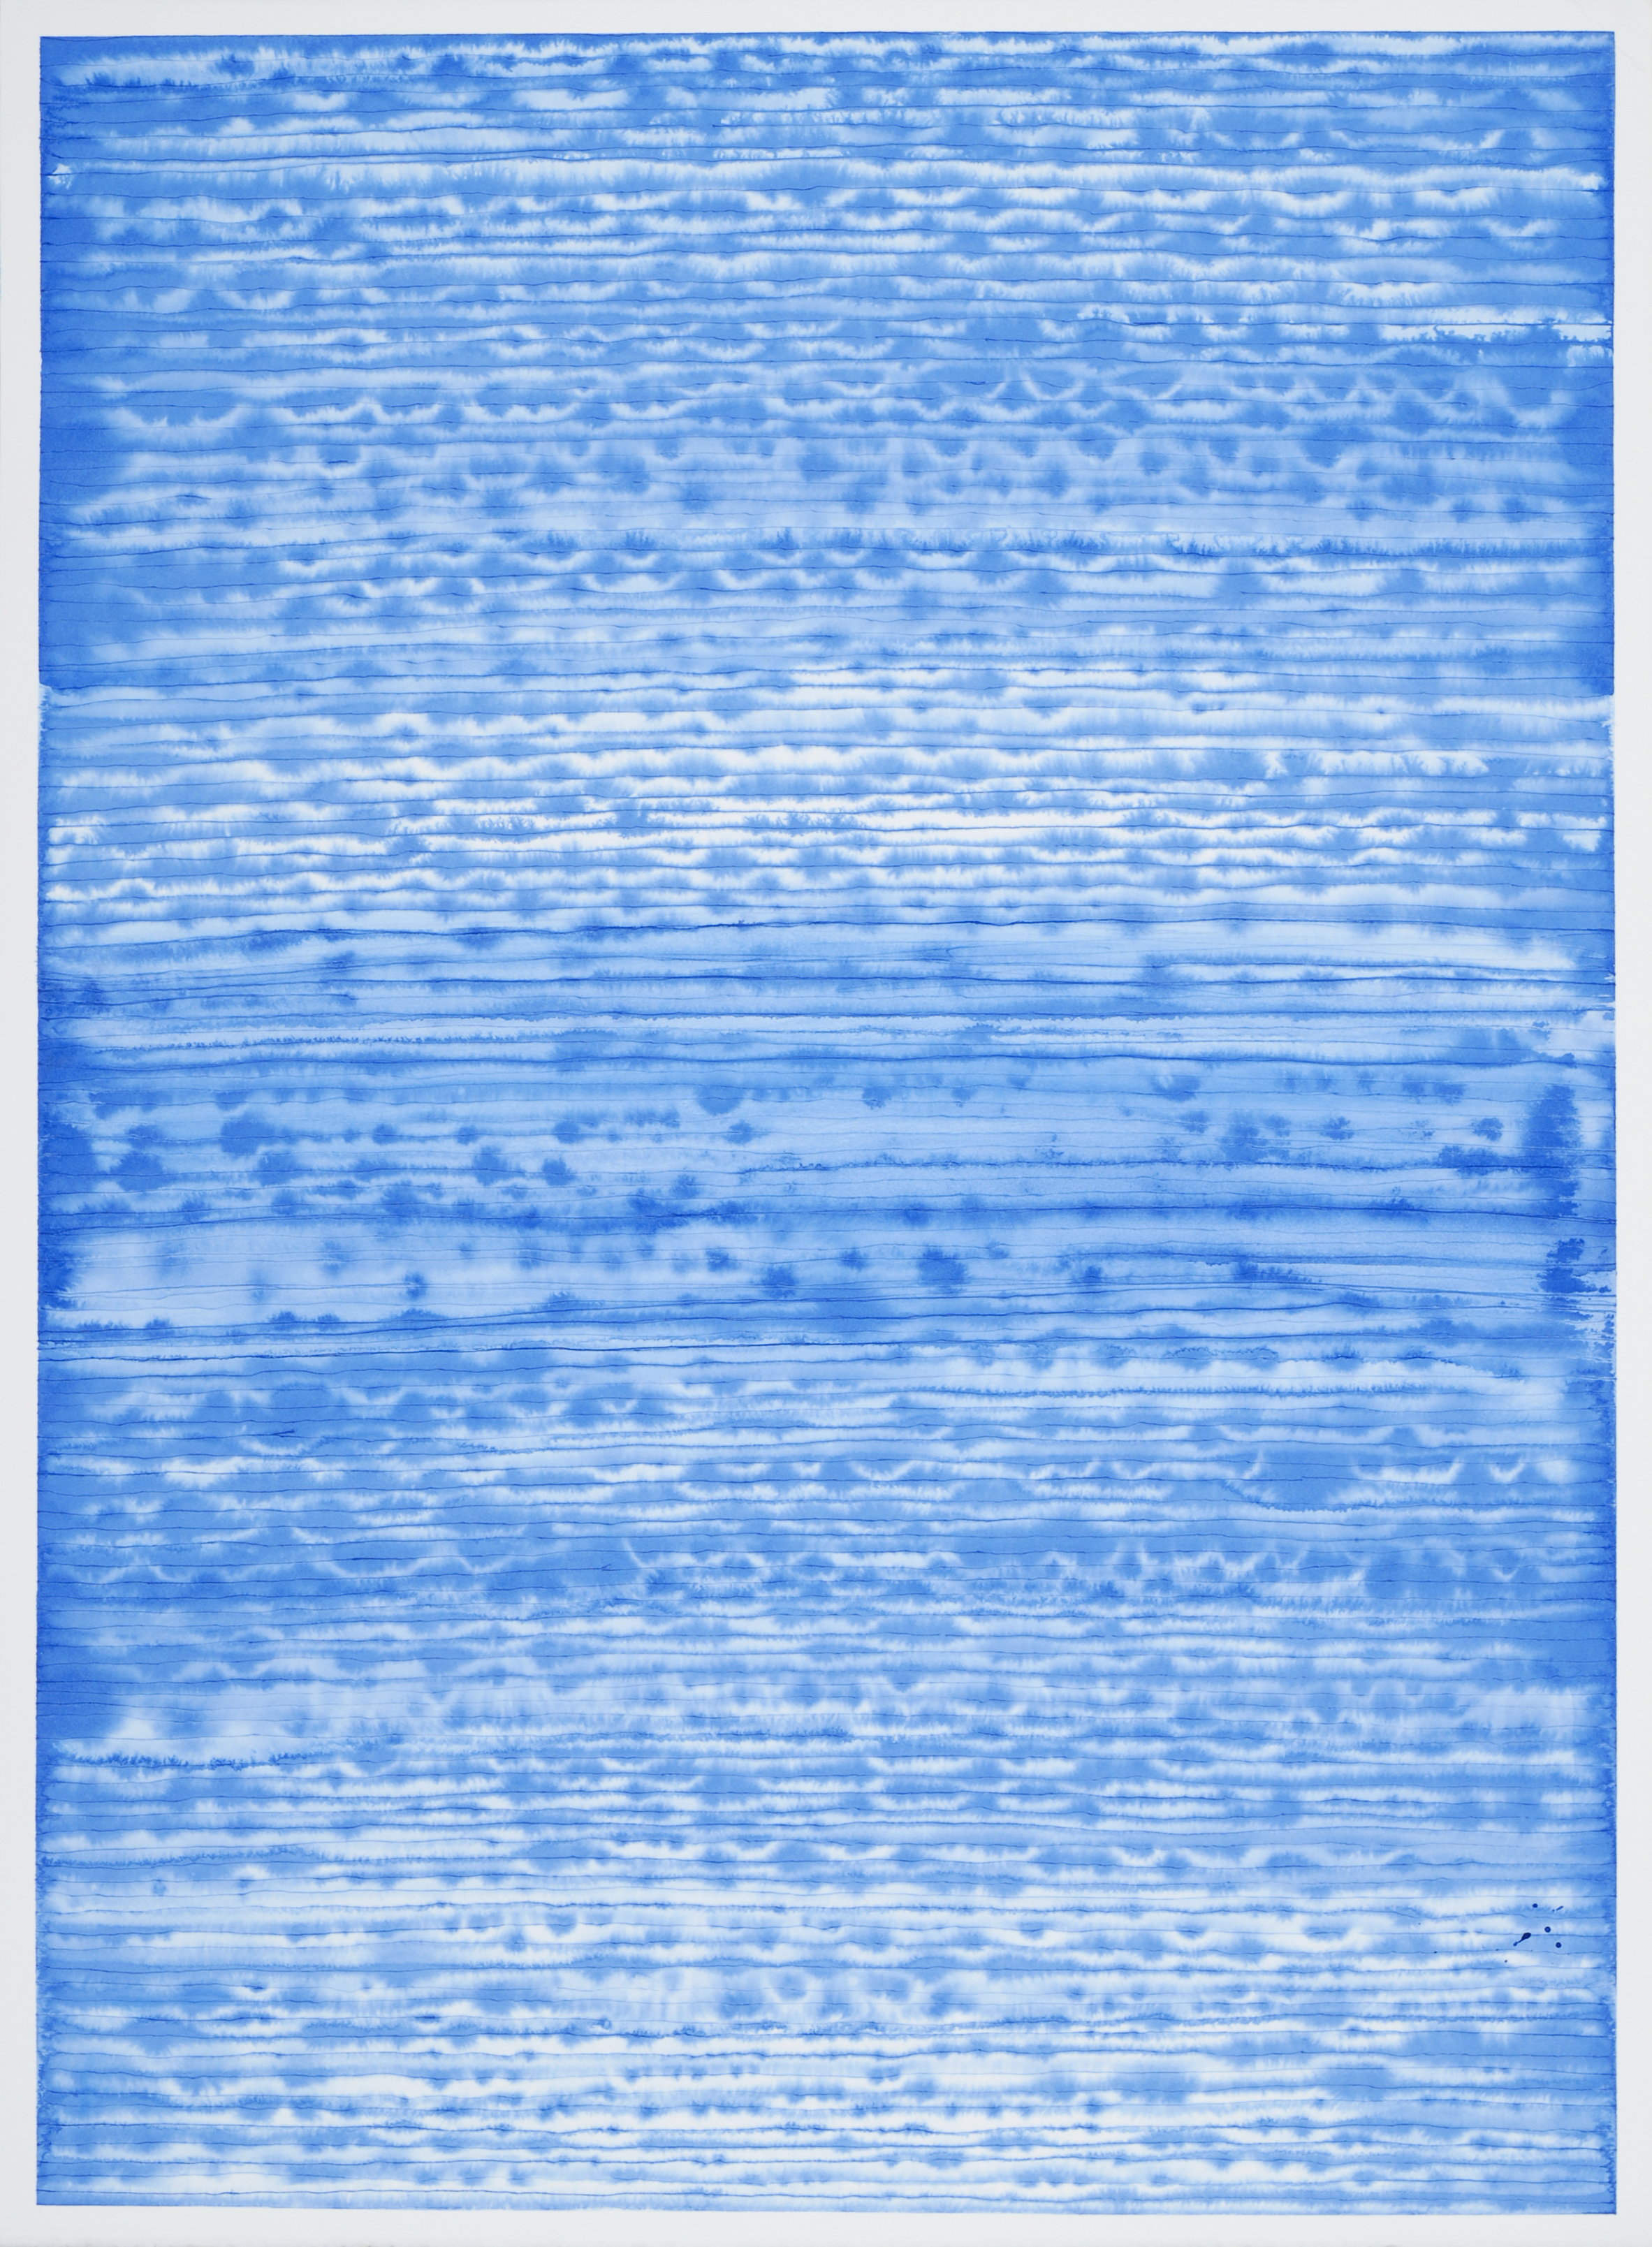 """08.30.11 (the groundless ground), 2011 